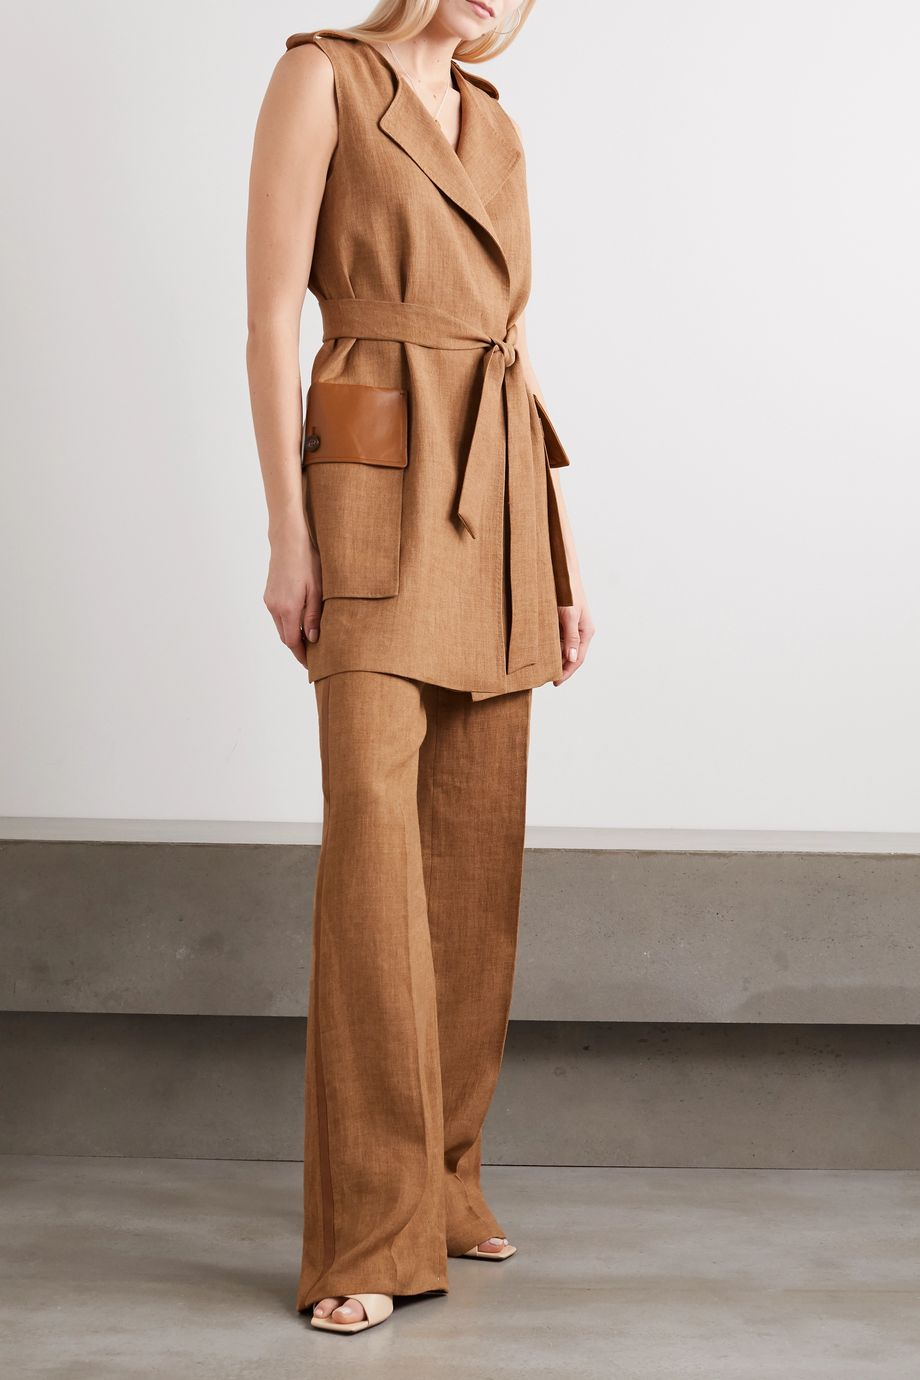 Max Mara Salubre leather and satin-trimmed linen wide-leg pants